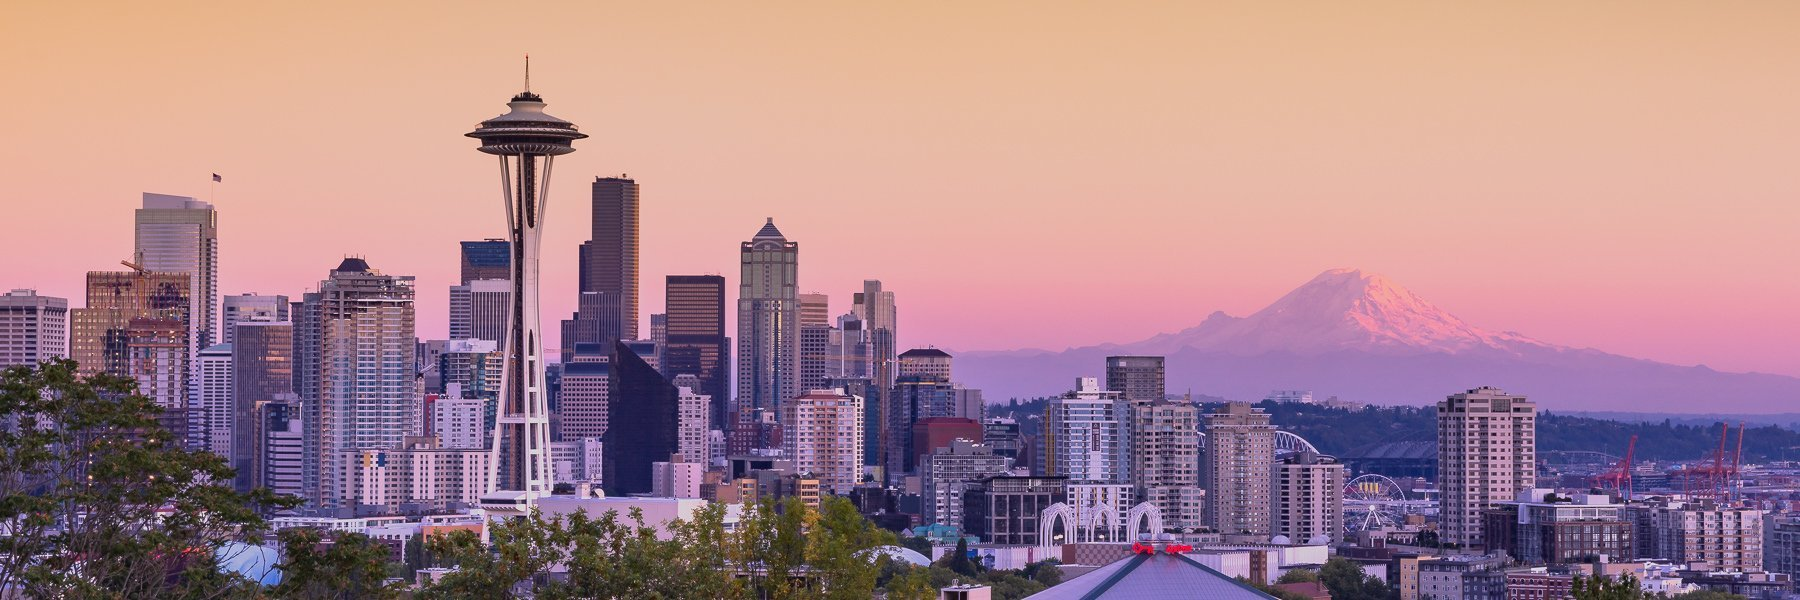 Seattle city skyline with snow capped Mount Rainier in the distance at sunset.